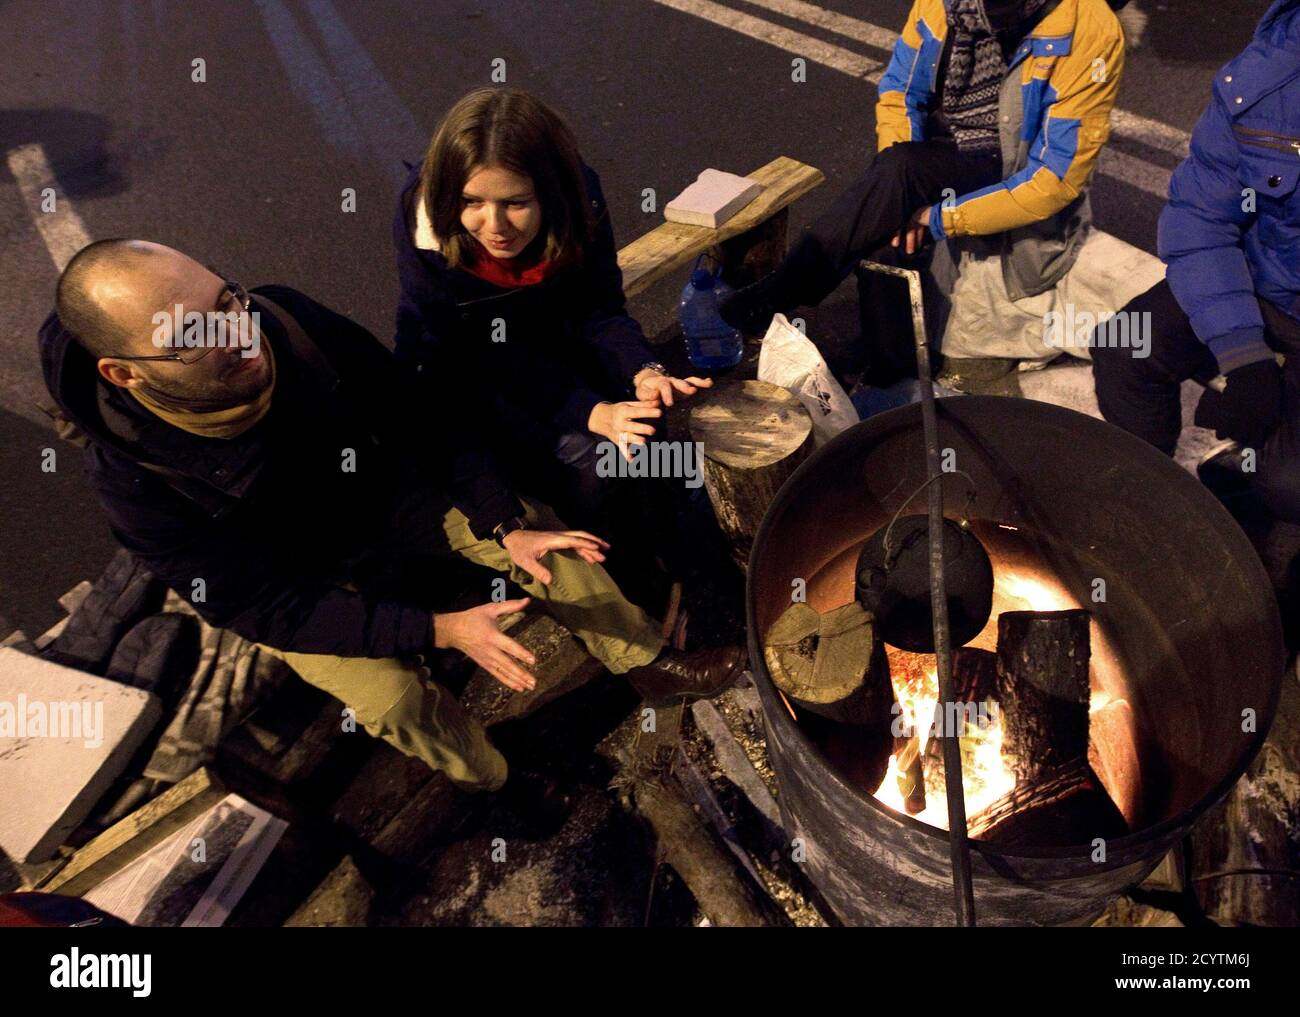 Igor Skliarevsky and his wife Elena warm themselves at a fire in a pro-European protesters camp at Independence Square in Kiev, December 16, 2013. By day, Igor Skliarevsky works as a graphic designer. By night, he is an anti-government protester, sometimes manning the barricades in Ukraine's snowy capital. The 36-year-old delivers maps for fellow protesters, directing them to medical posts or kitchens. He also set up a website coordinating food, warm clothing and other supplies for those camped out on Kiev's Independence Square. Picture taken December 16, 2013.  REUTERS/Vasily Fedosenko (UKRAI Foto de stock